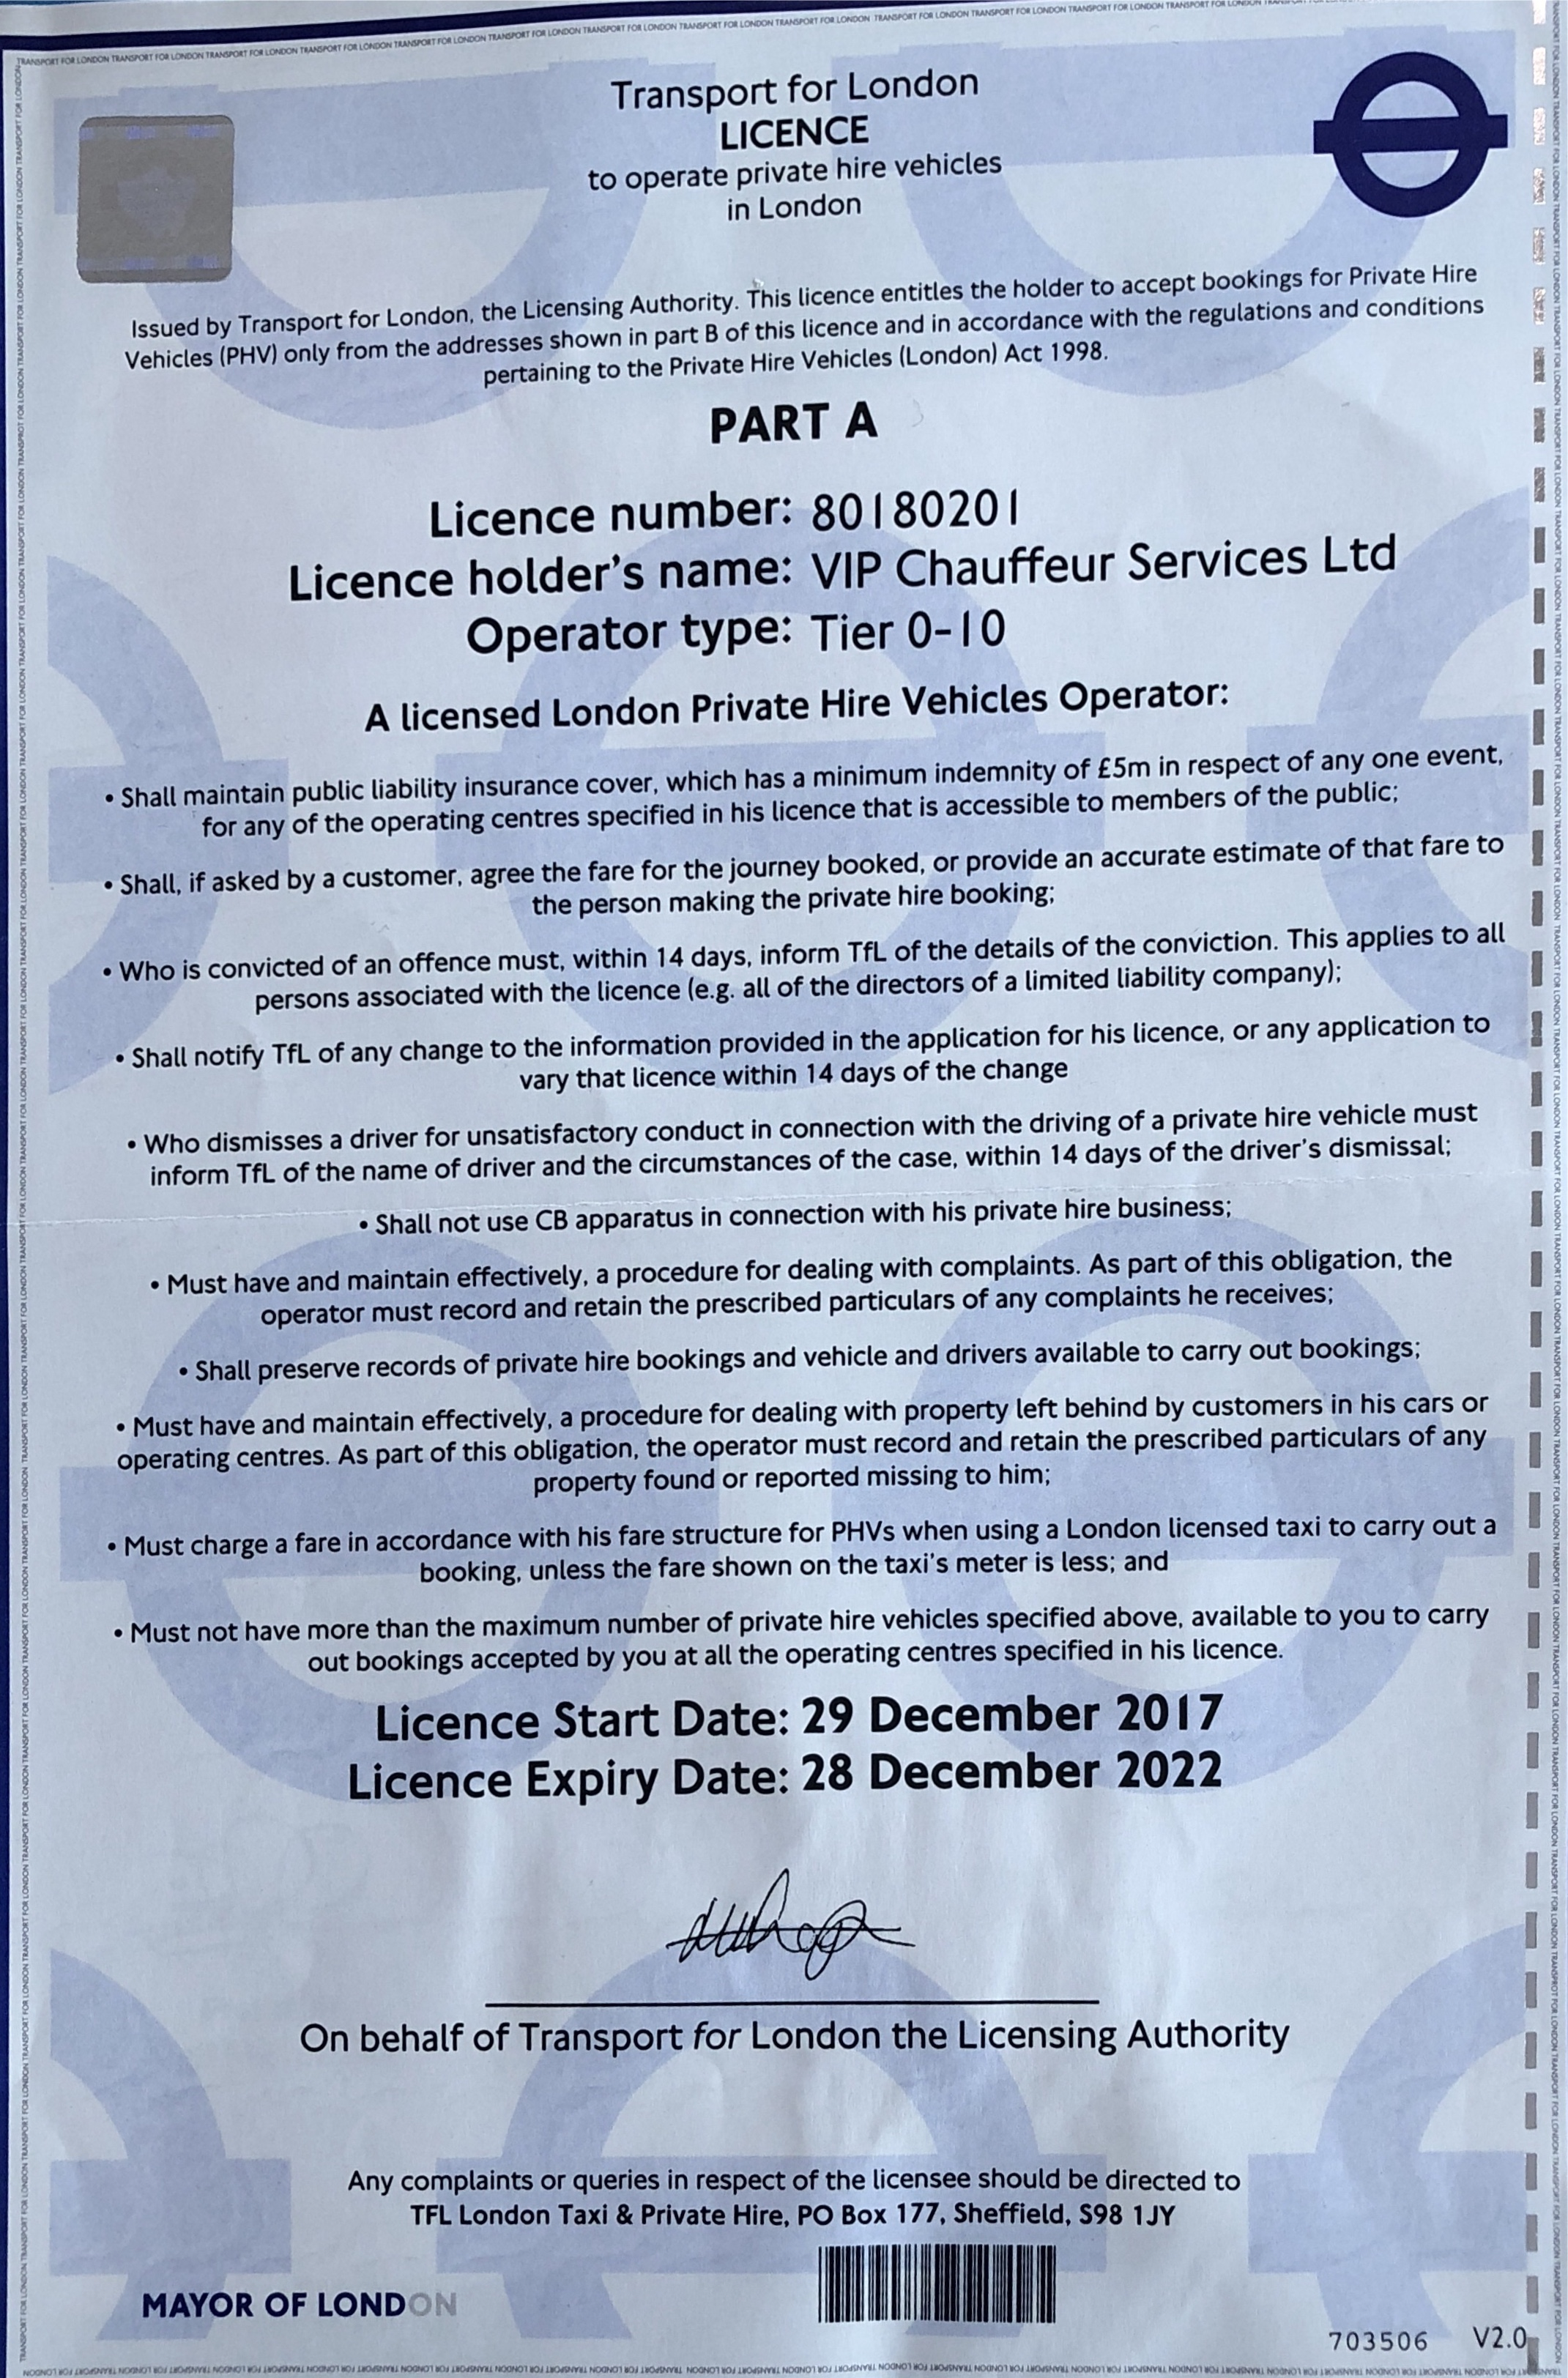 VIP CHAUFFEUR SERVICES LTD transport licence